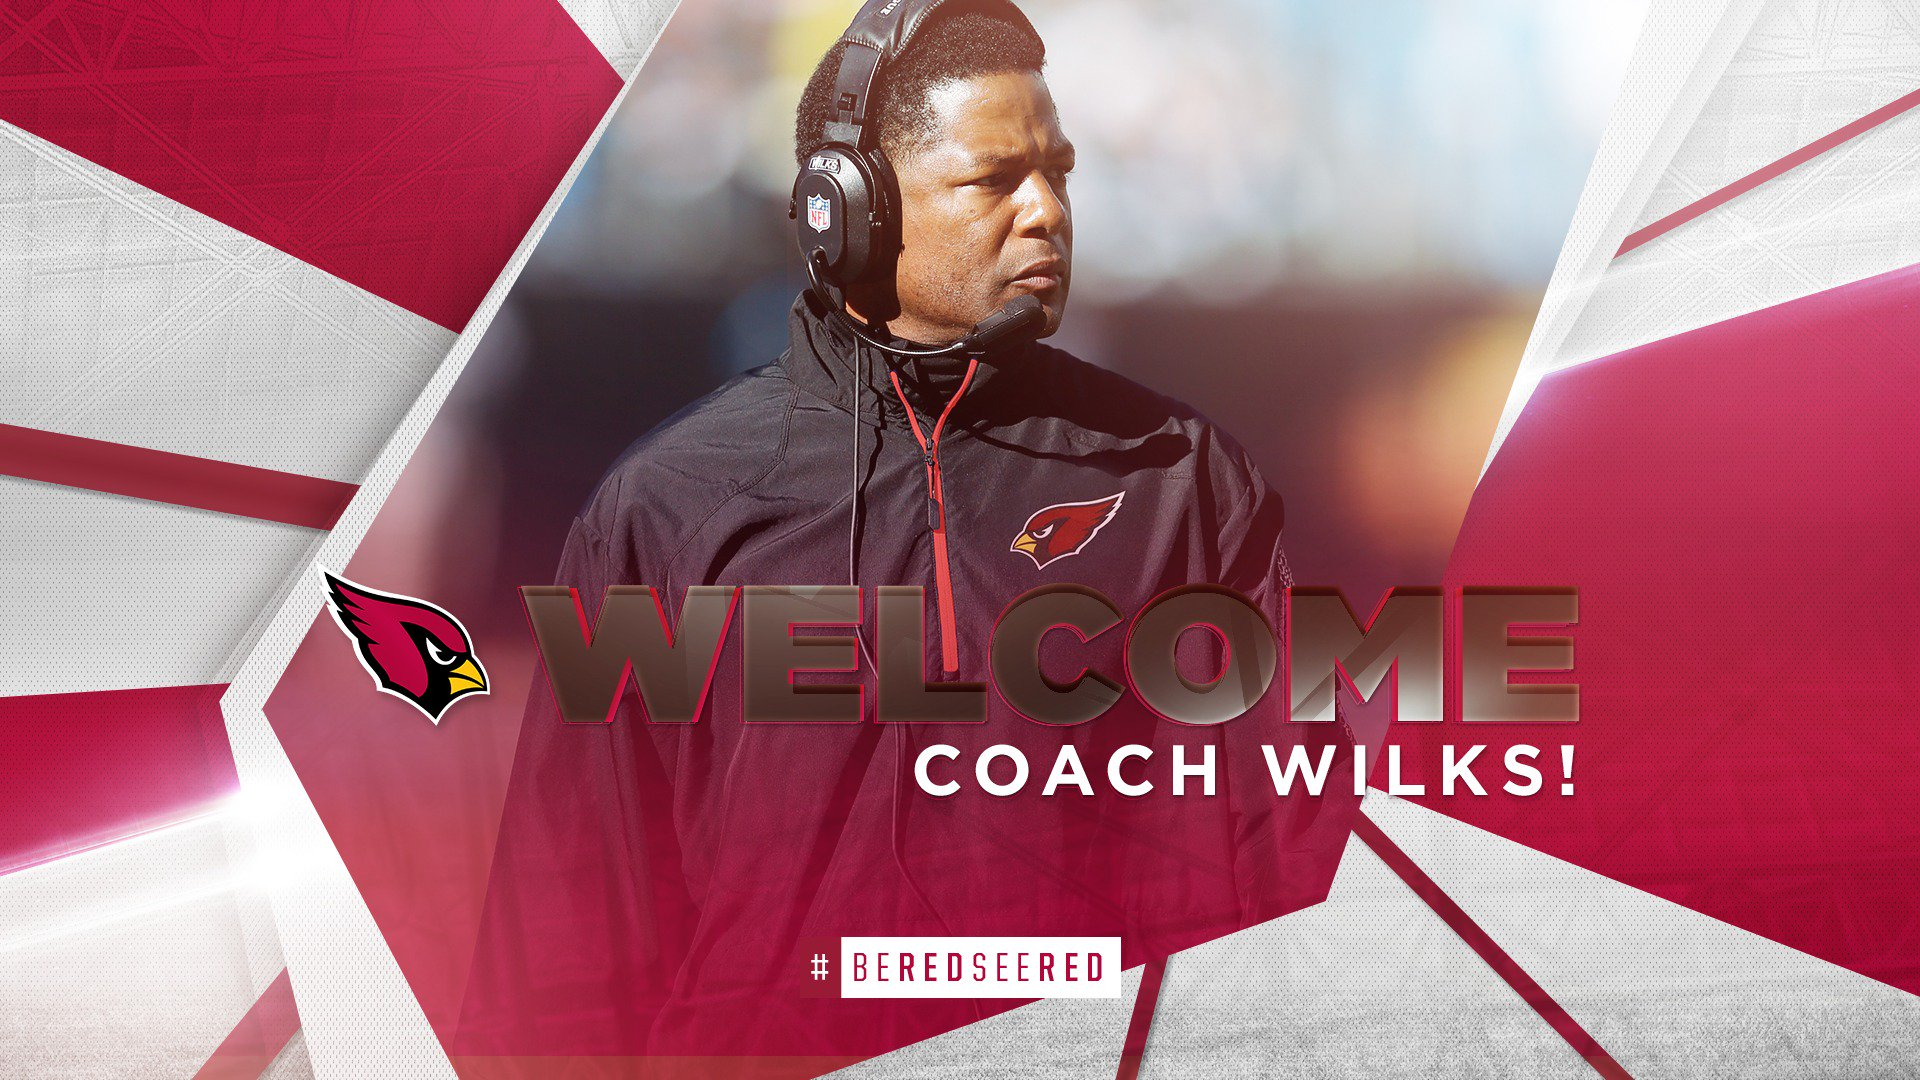 Welcome to Arizona, Coach Wilks!  MORE: https://t.co/Gc6rffTPVv   #BeRedSeeRed https://t.co/hQh30slJ5F